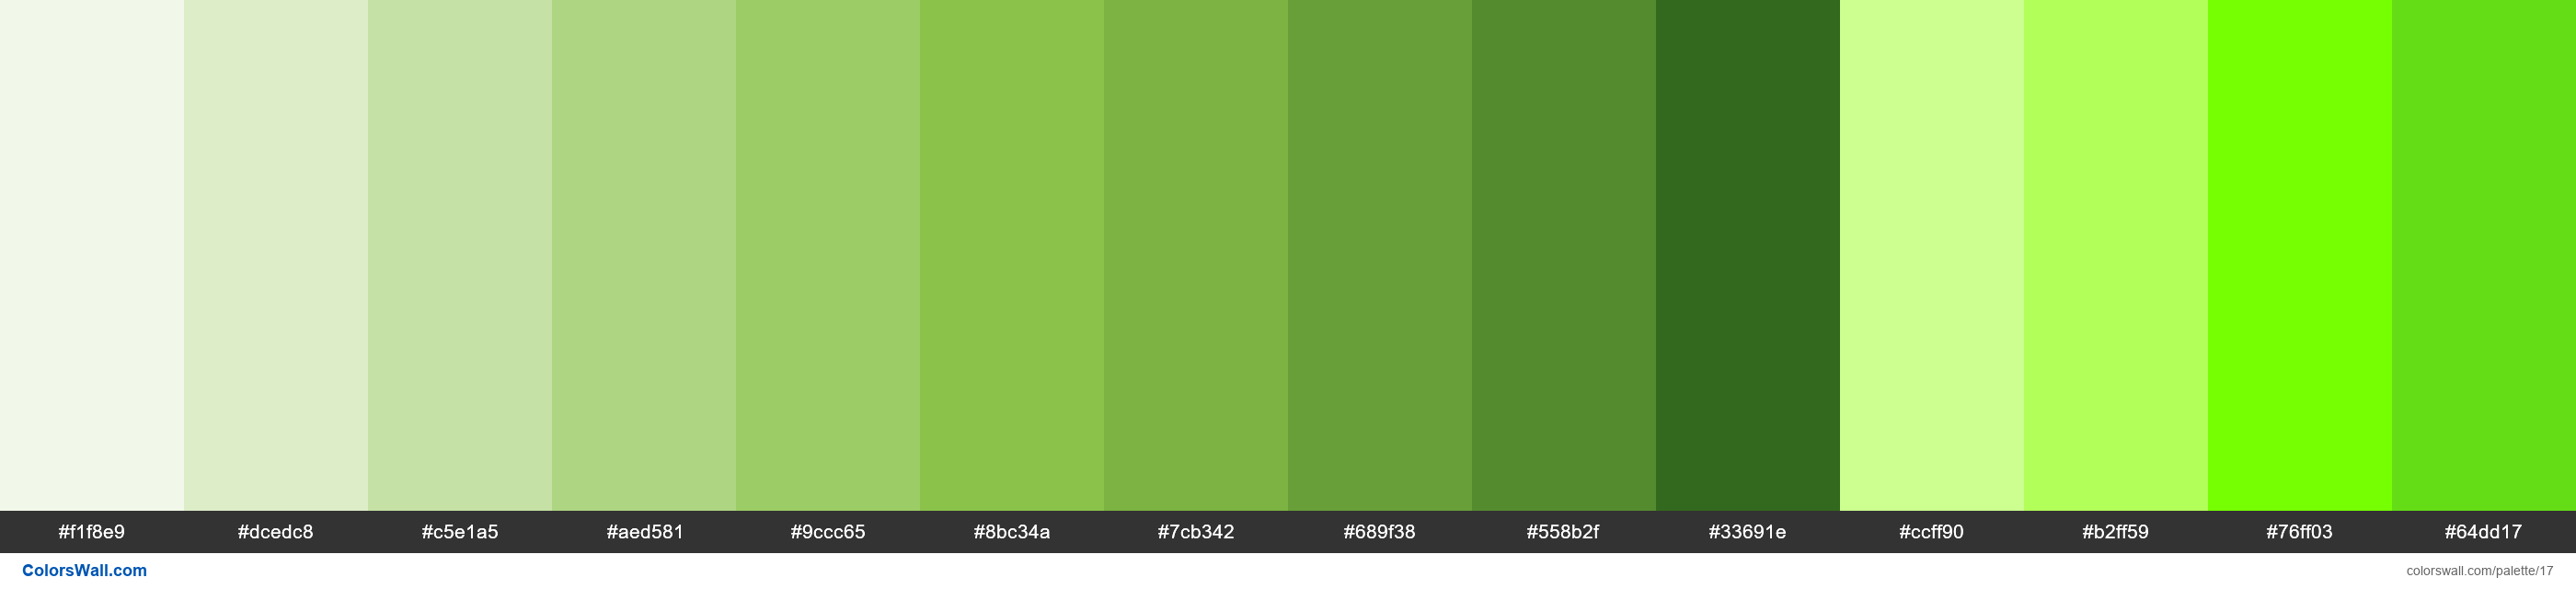 Light Green palette Materialize CSS - #17